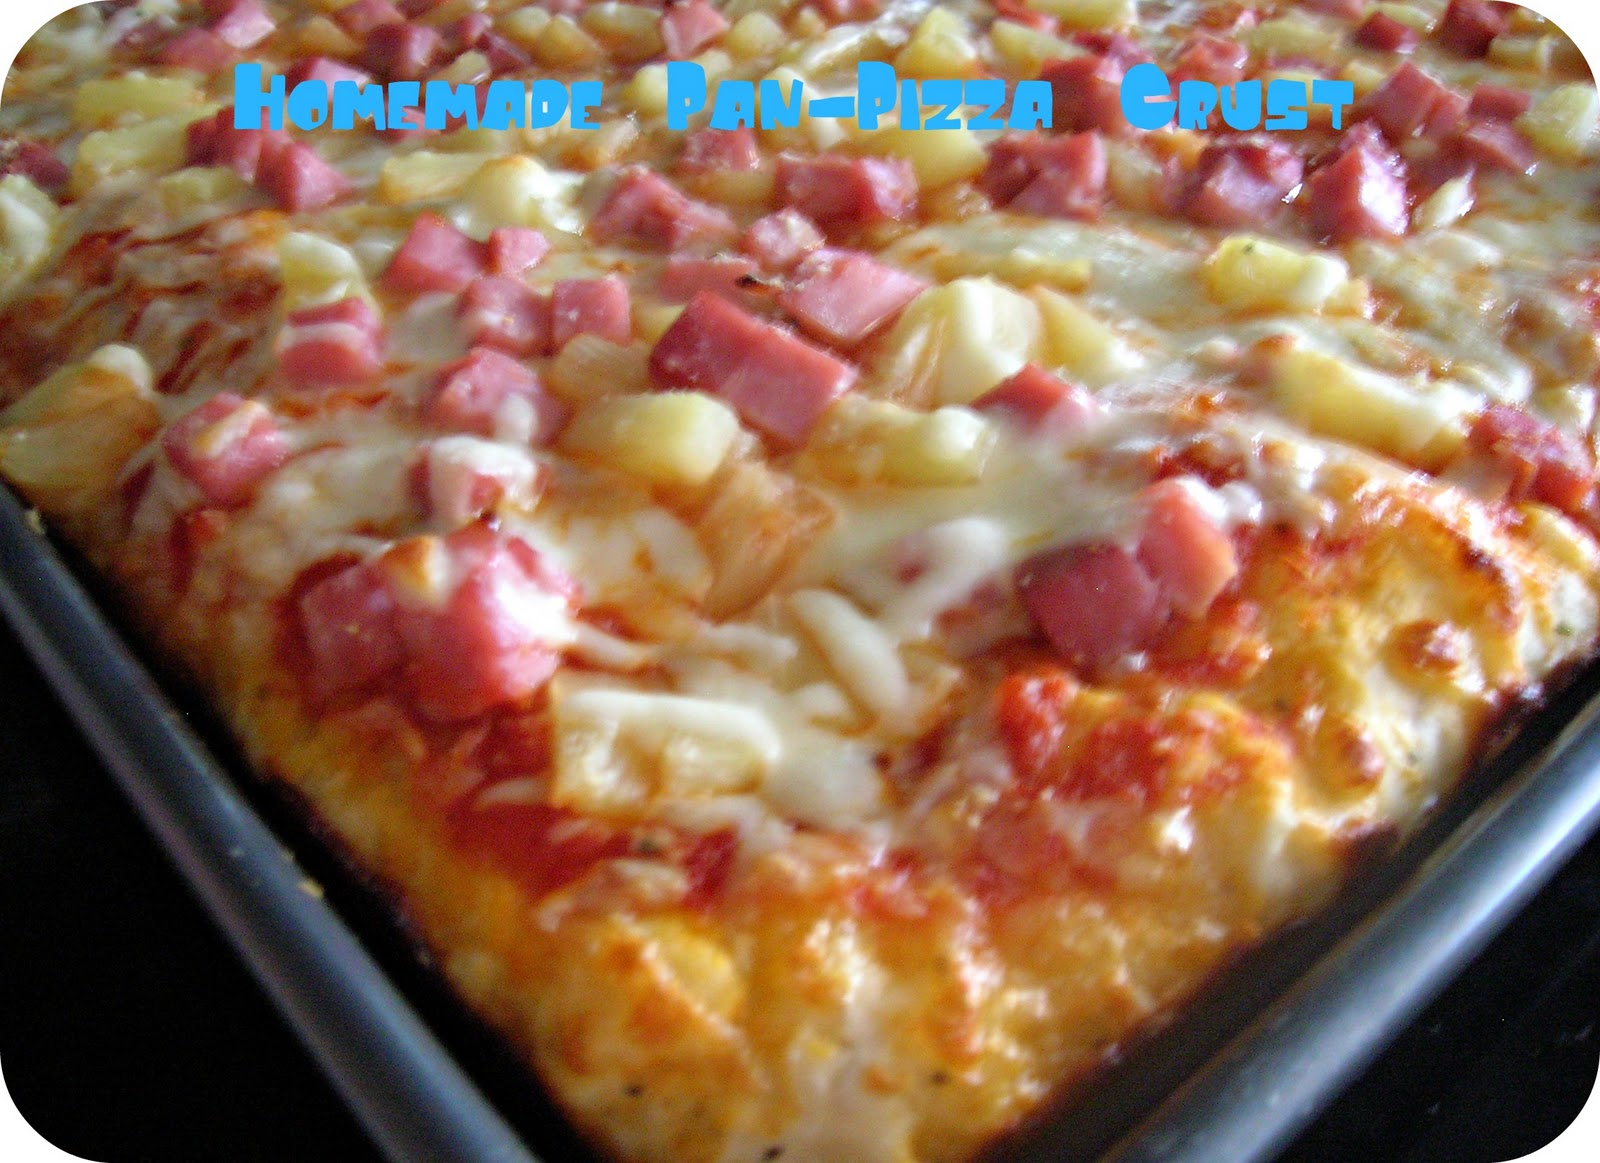 Pin}tastic Friday - Homemade Pizza Dough